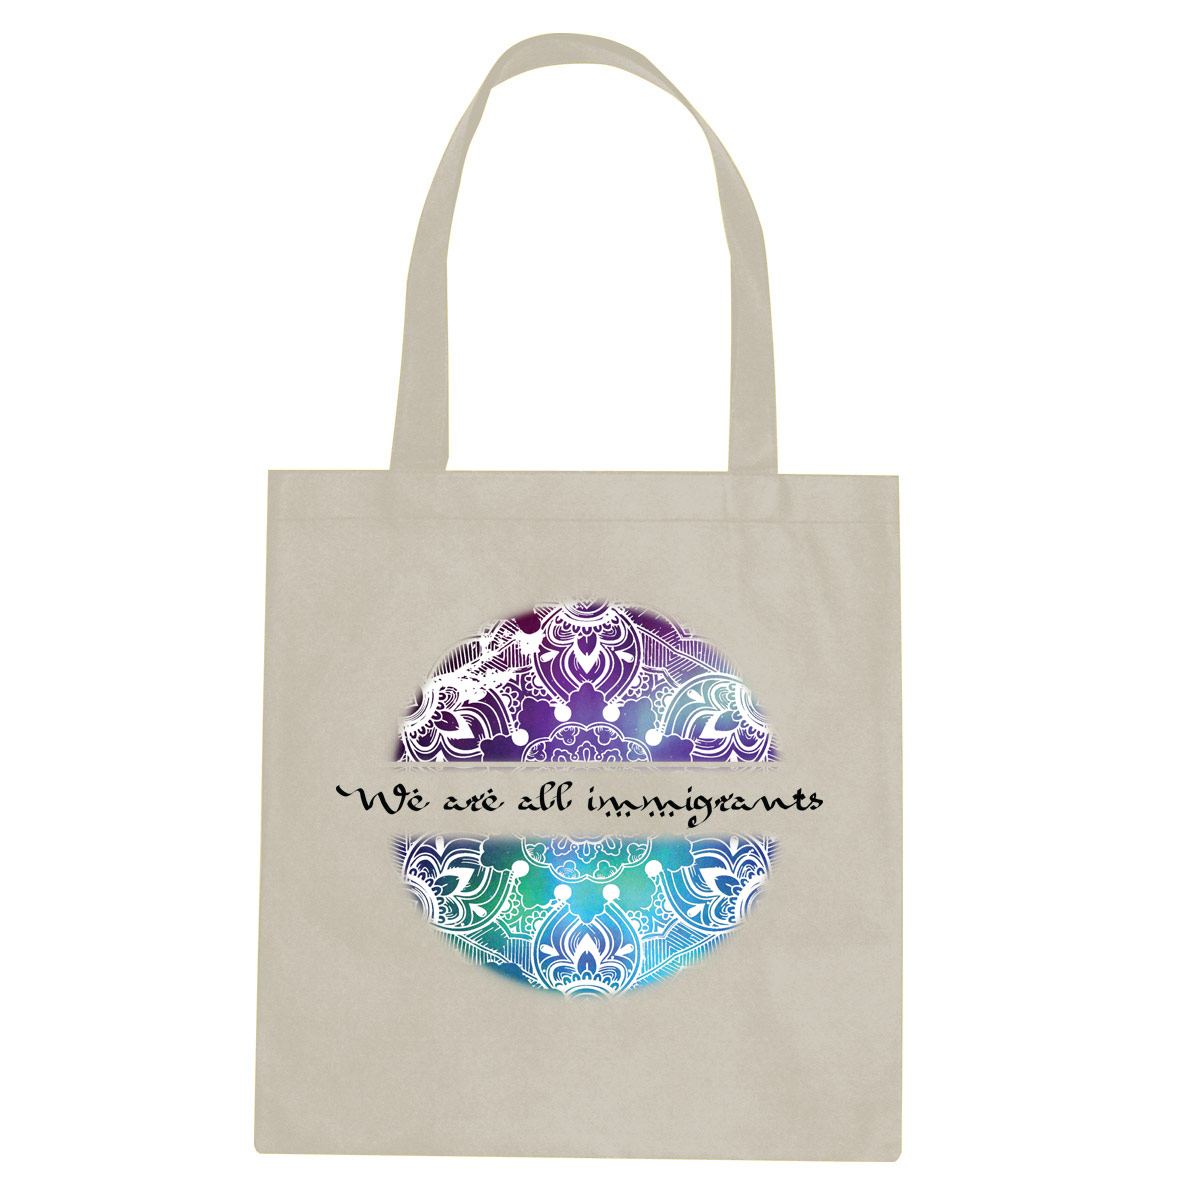 We Are All Immigrants tote bag  €14.99 Available in natural